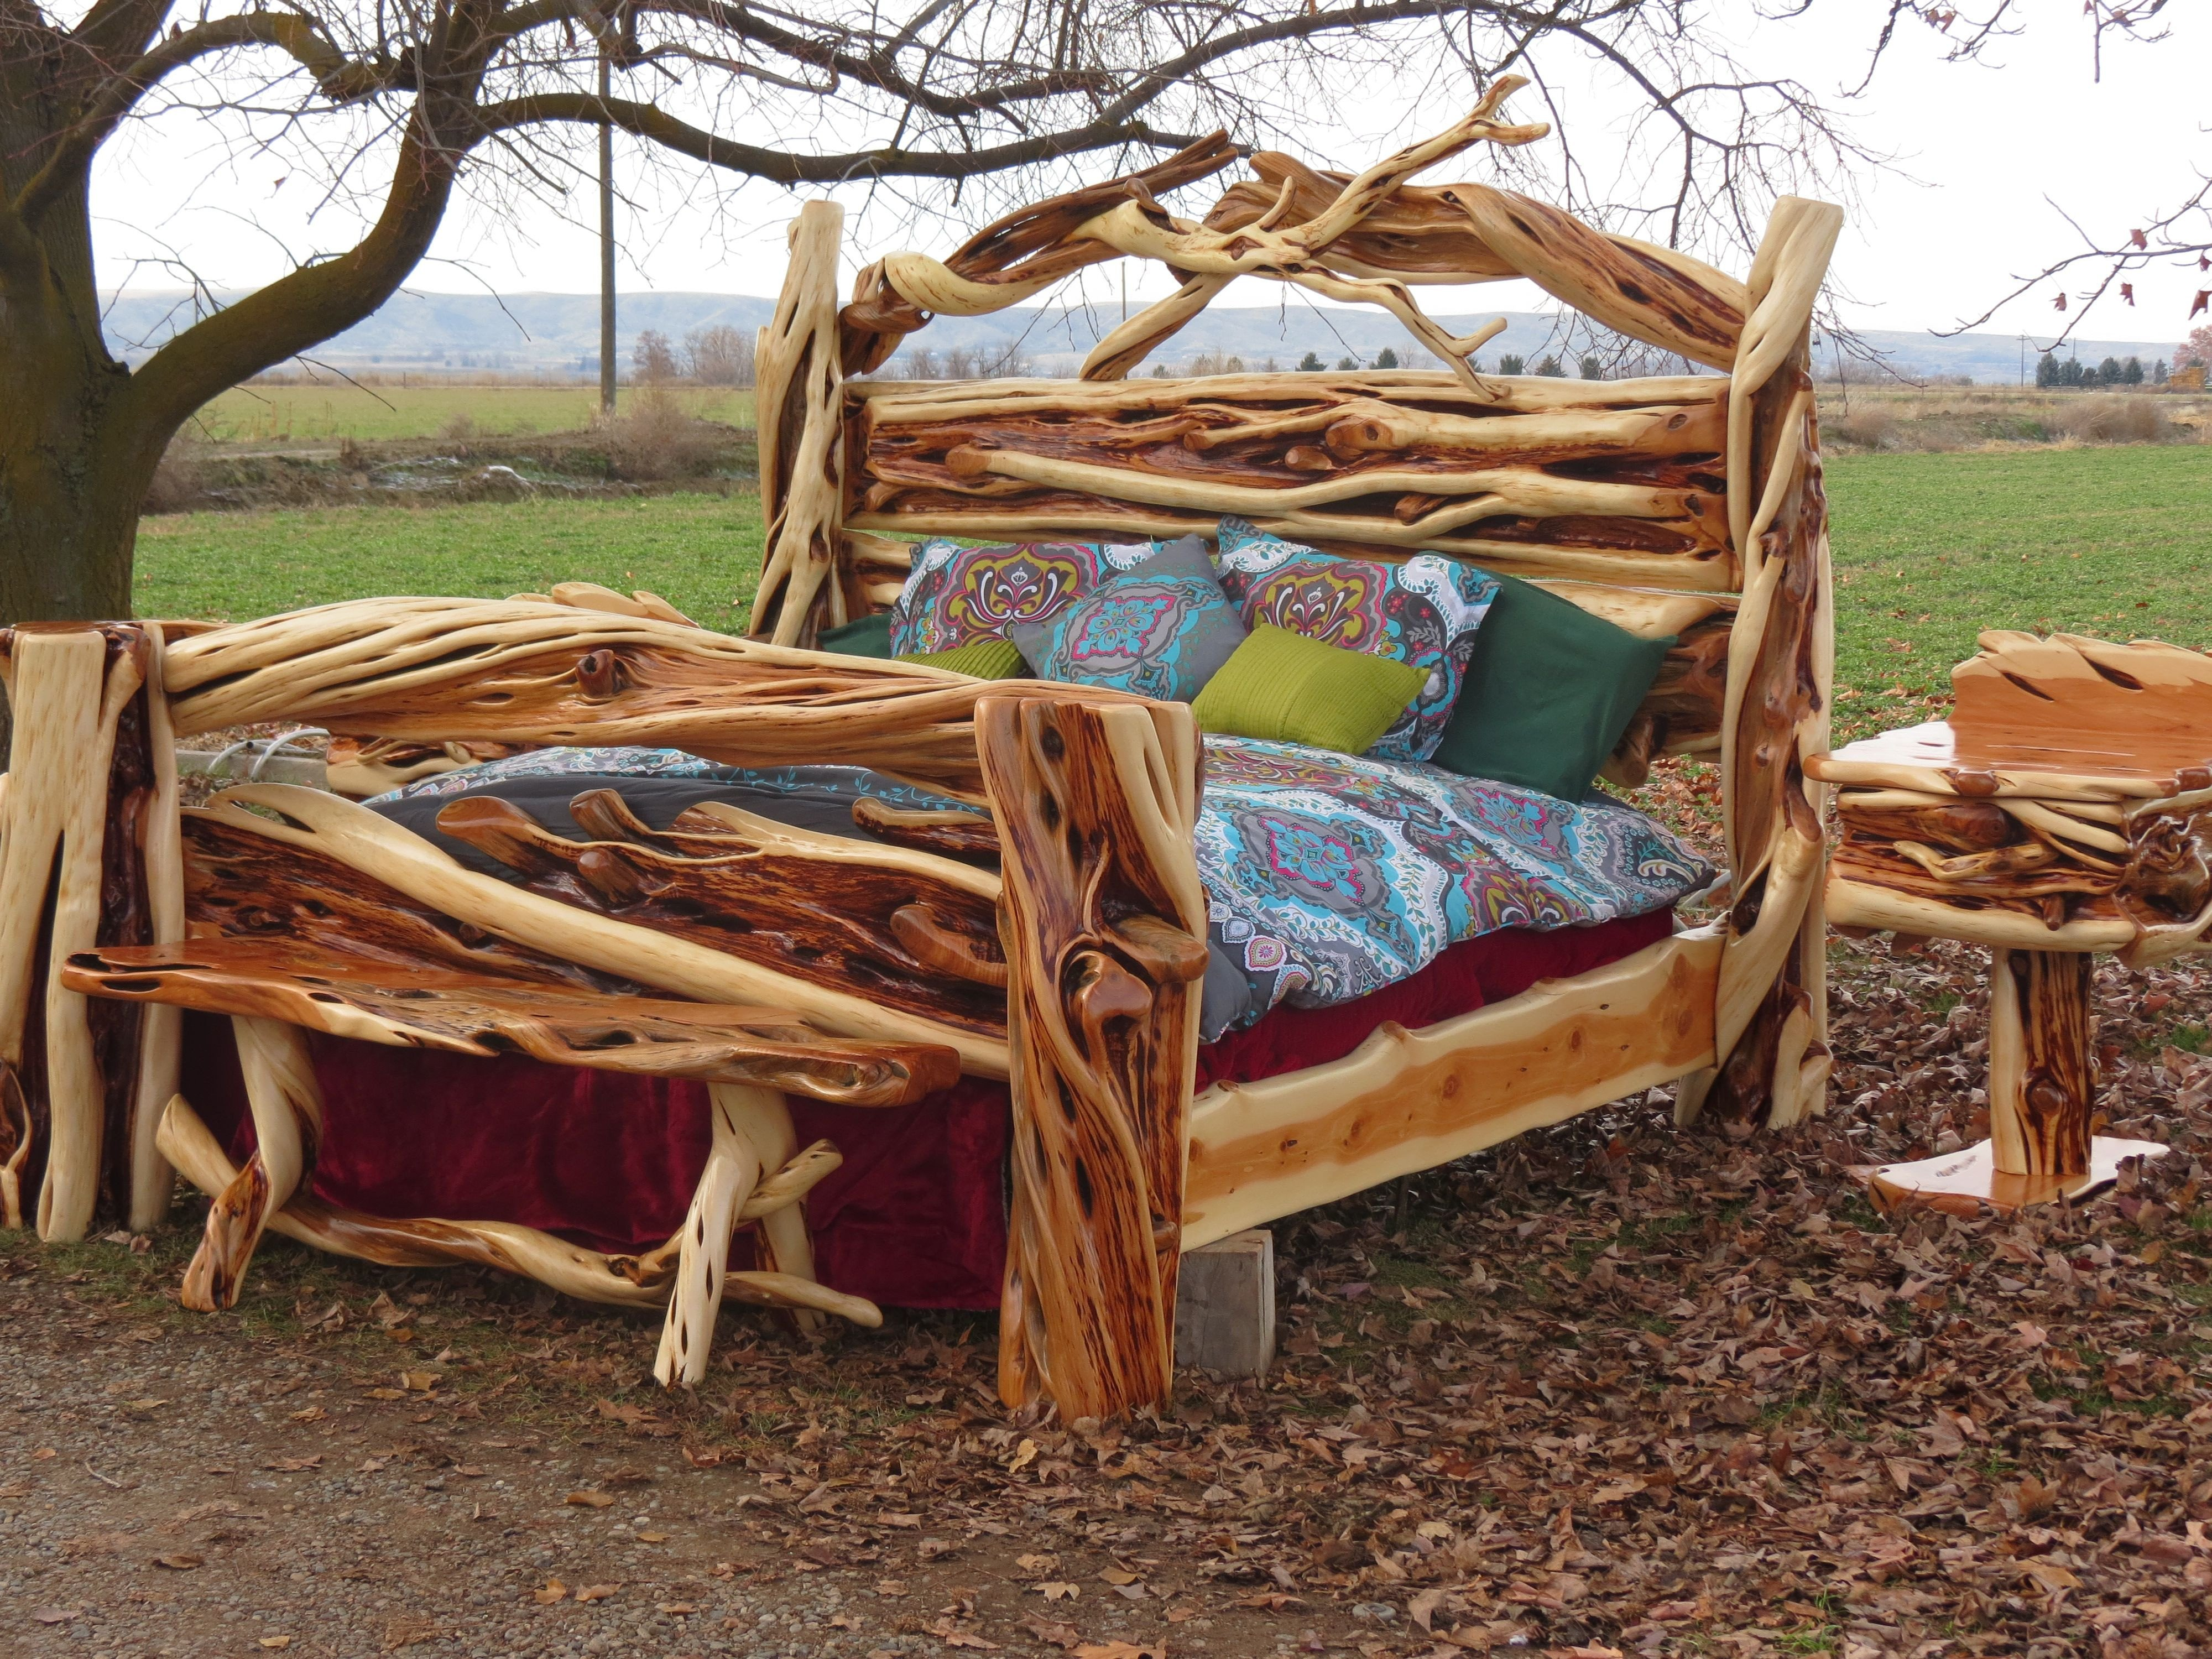 Log King Size Bedroom Set Lovely the Twists and Curves Of This Gorgeous King Slab Juniper Log